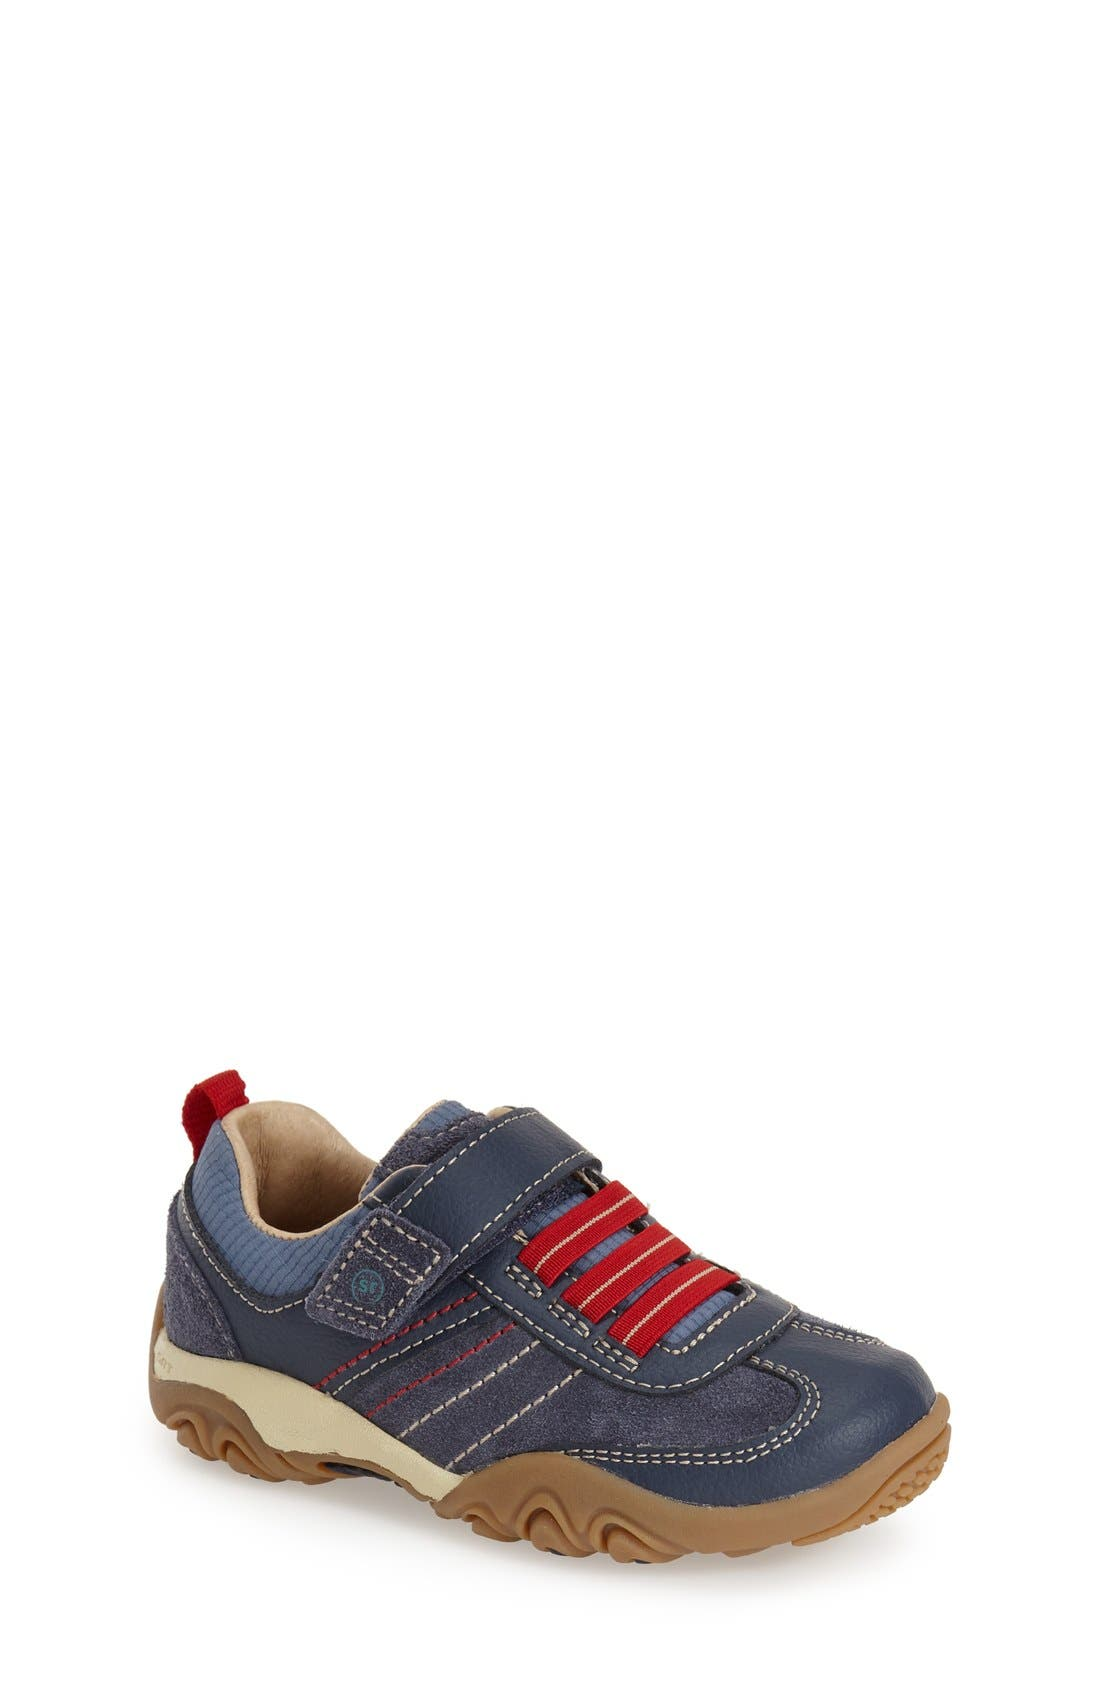 Alternate Image 1 Selected - Stride Rite 'SRT Prescott' Sneaker (Baby, Walker & Toddler)